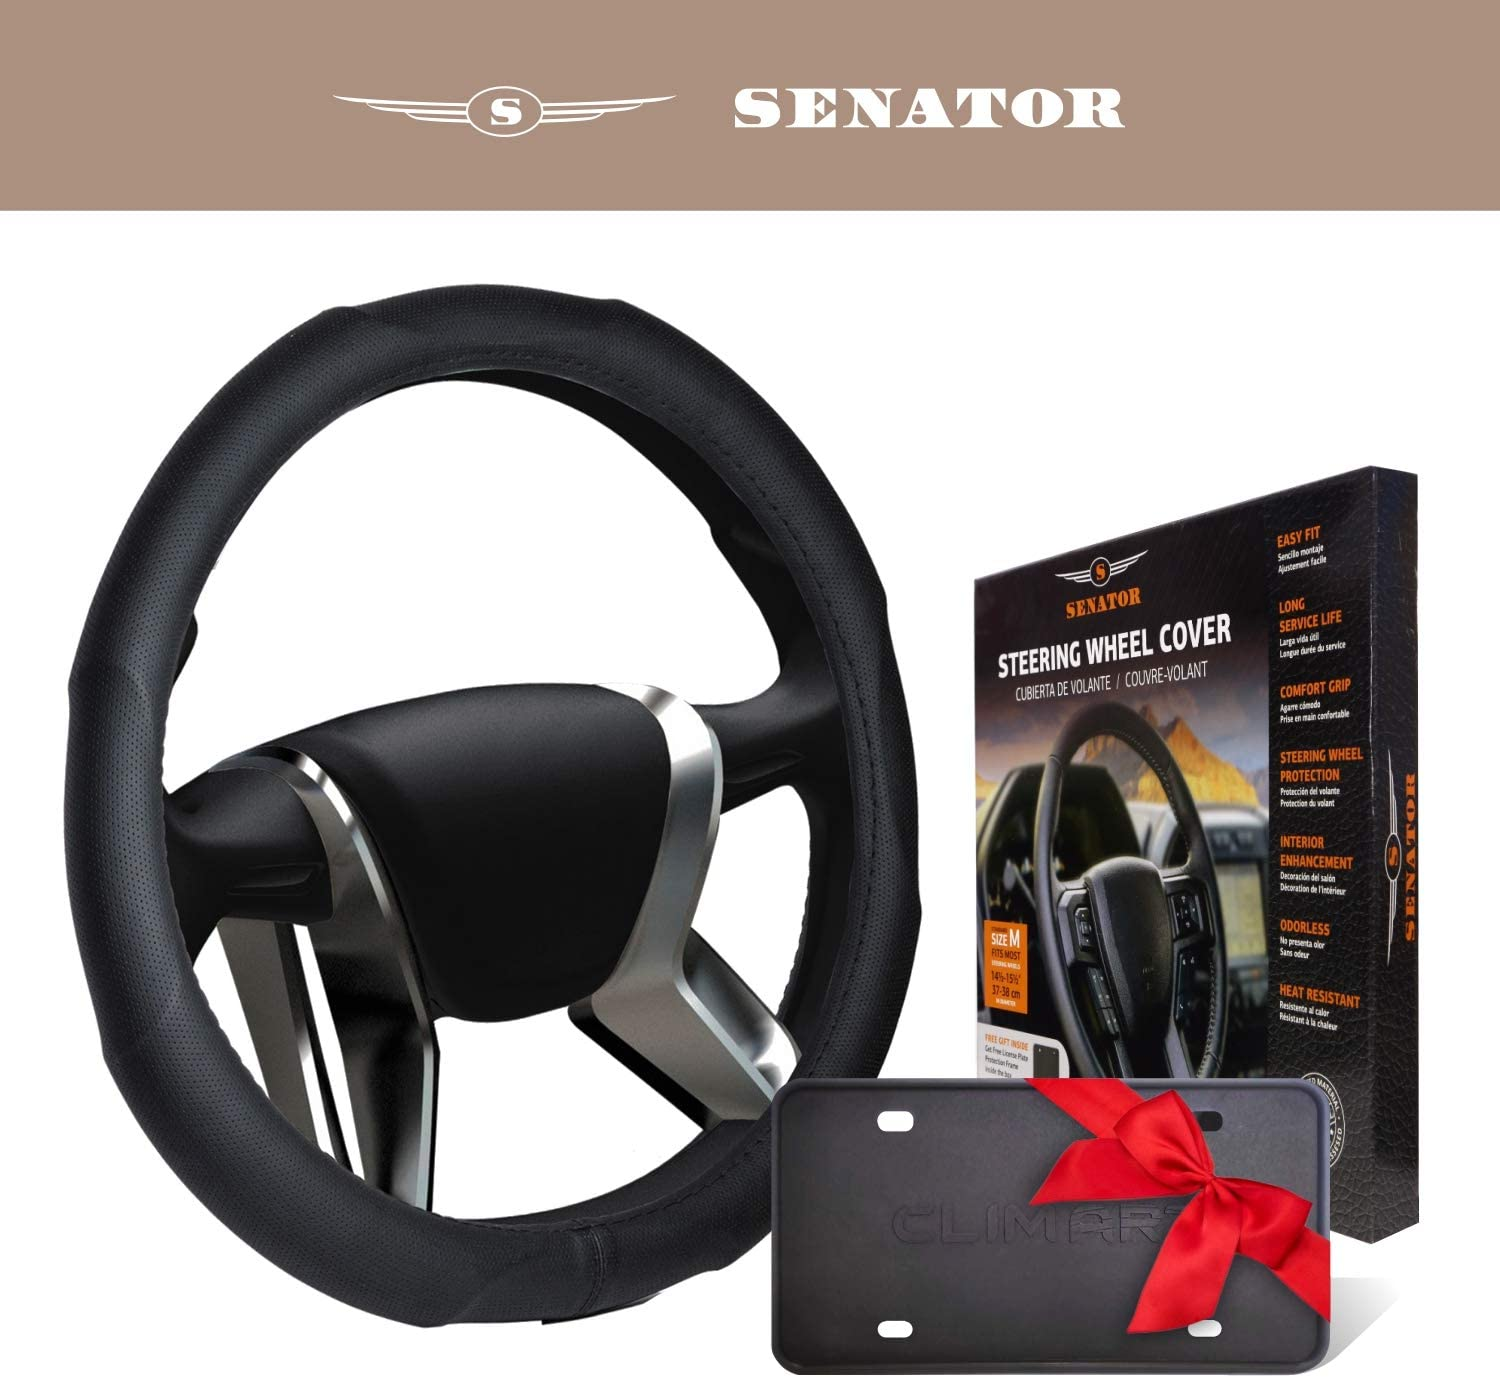 SENATOR Steering Wheel Cover for Cars, Trucks, and SUVs MAI01 15 inches M Black Leather PU Universal Fit with Slip Resistant Grip 38cm Auto Car Accessories for Men & Women - SEOPLS1201